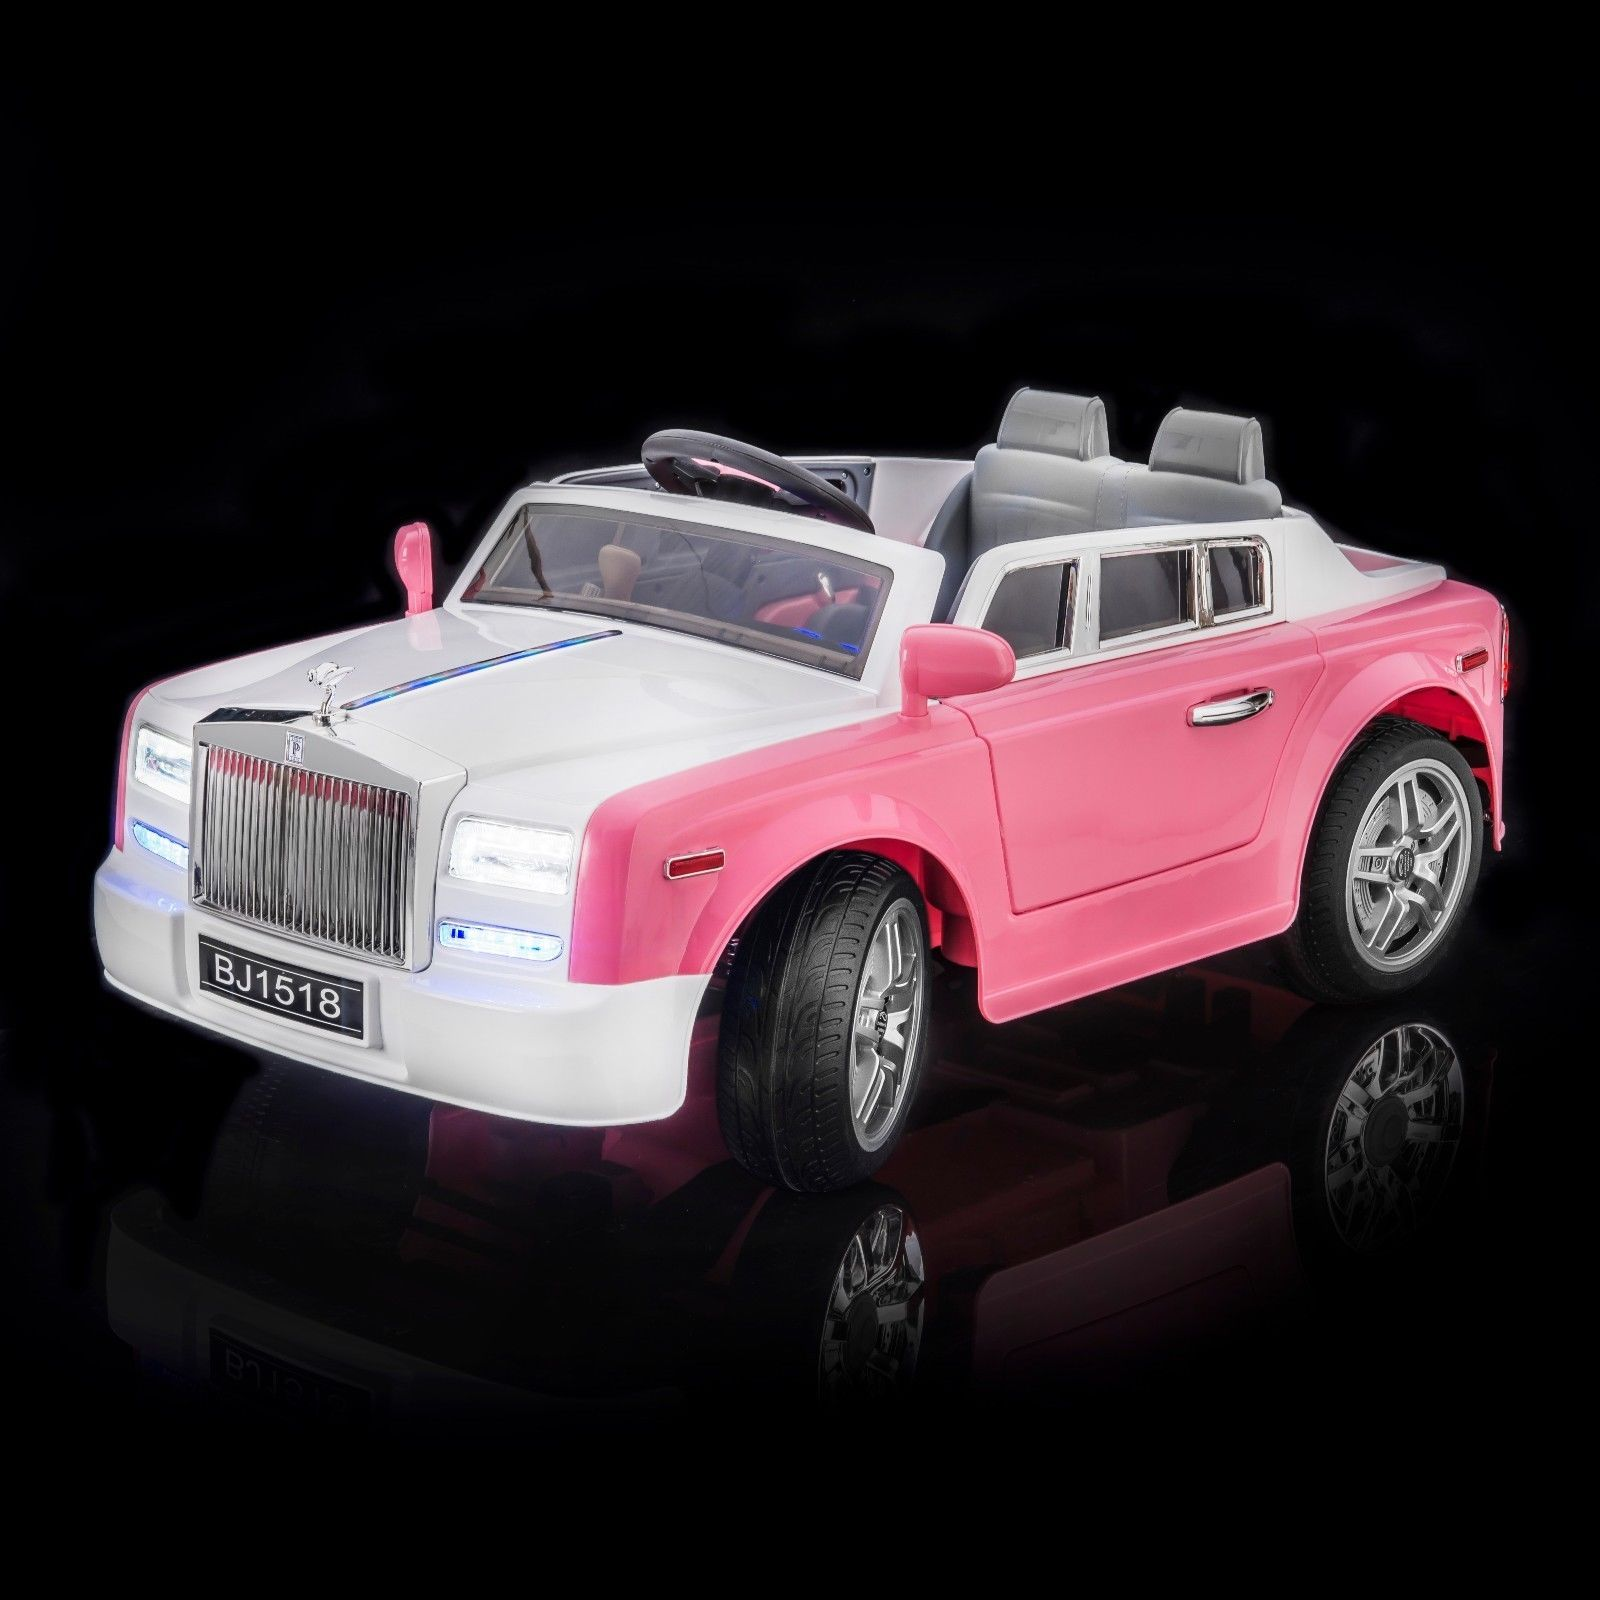 SPORTrax Ghost Kids Ride on Car FREE MP3 Player Pink